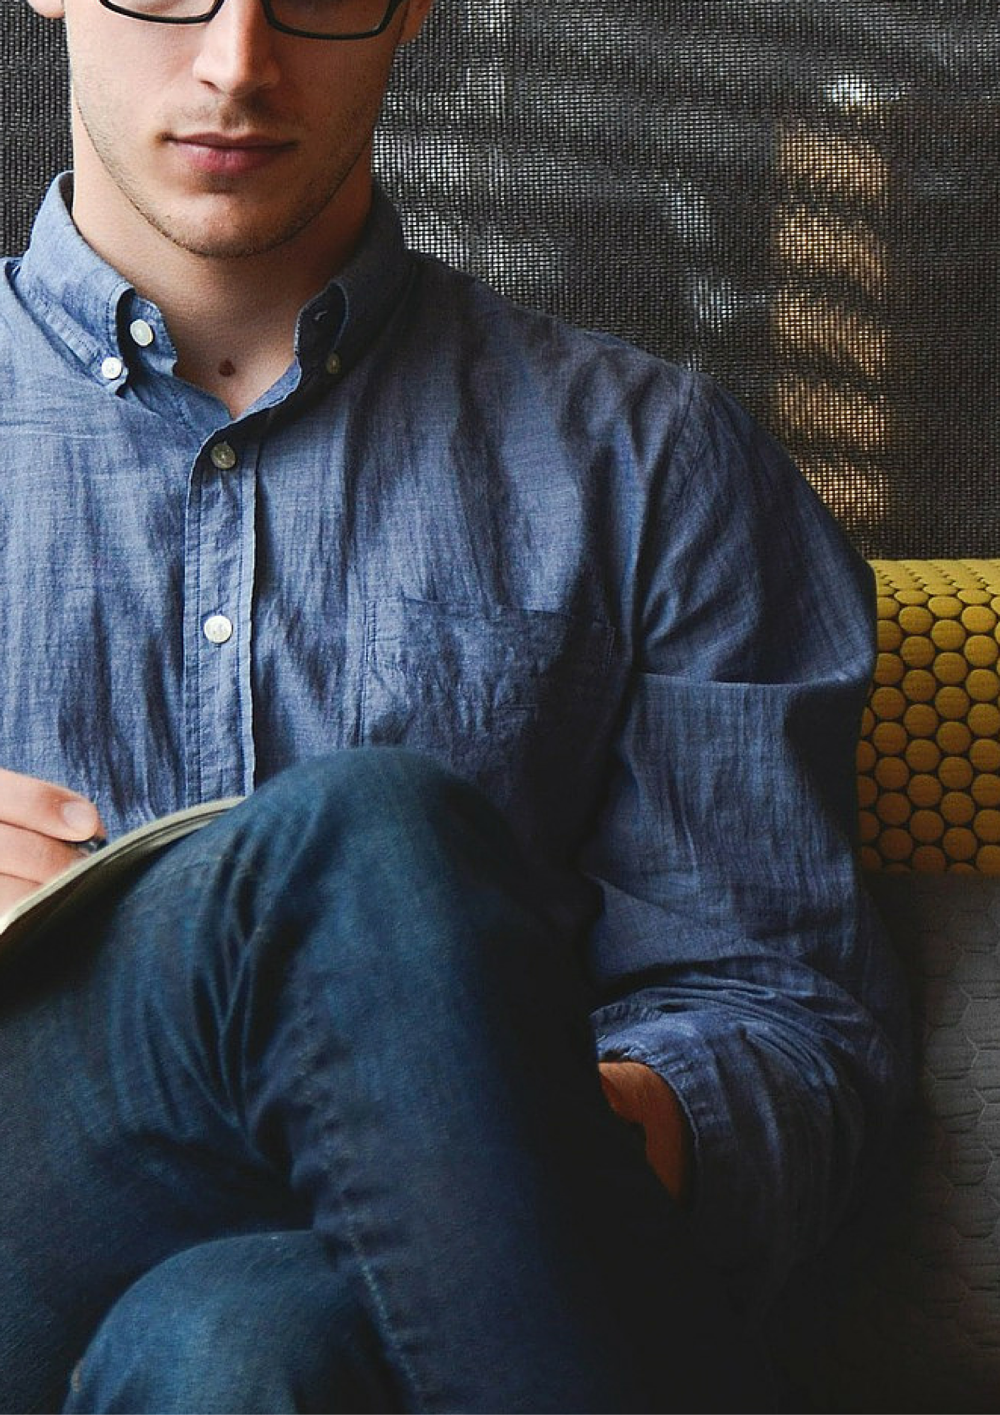 90 practical things you can do now to put your life in order